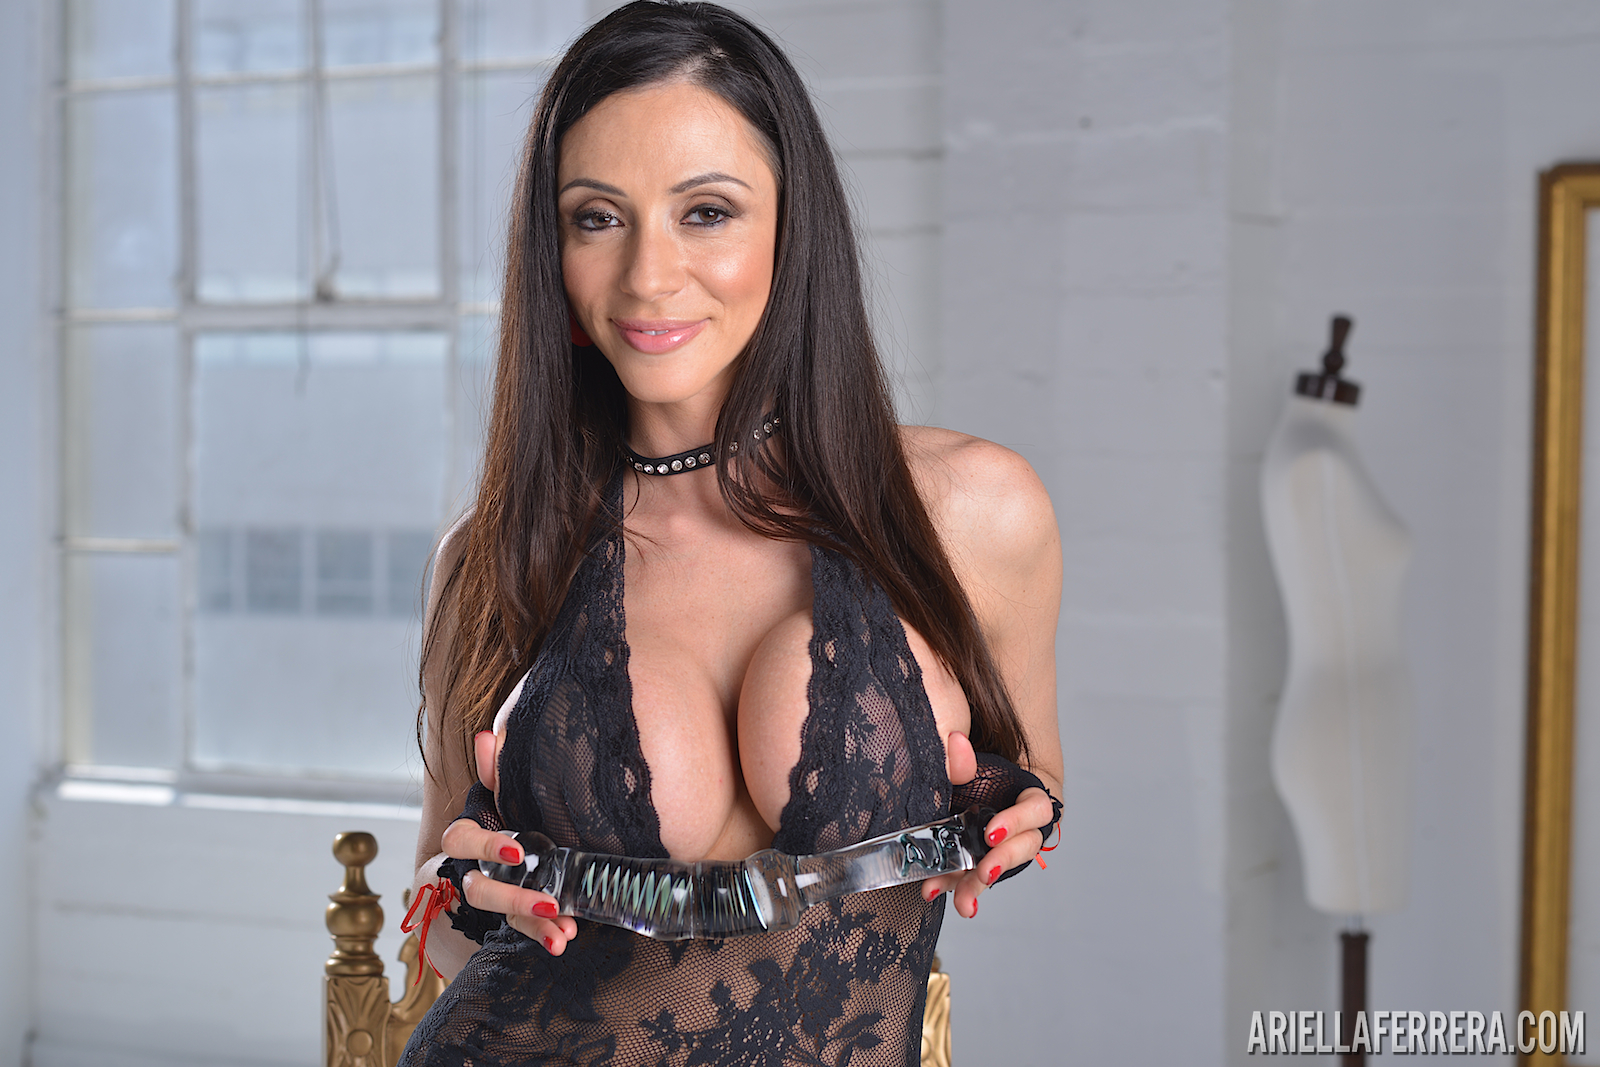 free porn samples of ariella ferrera - big tits naughty ariellar ferrera